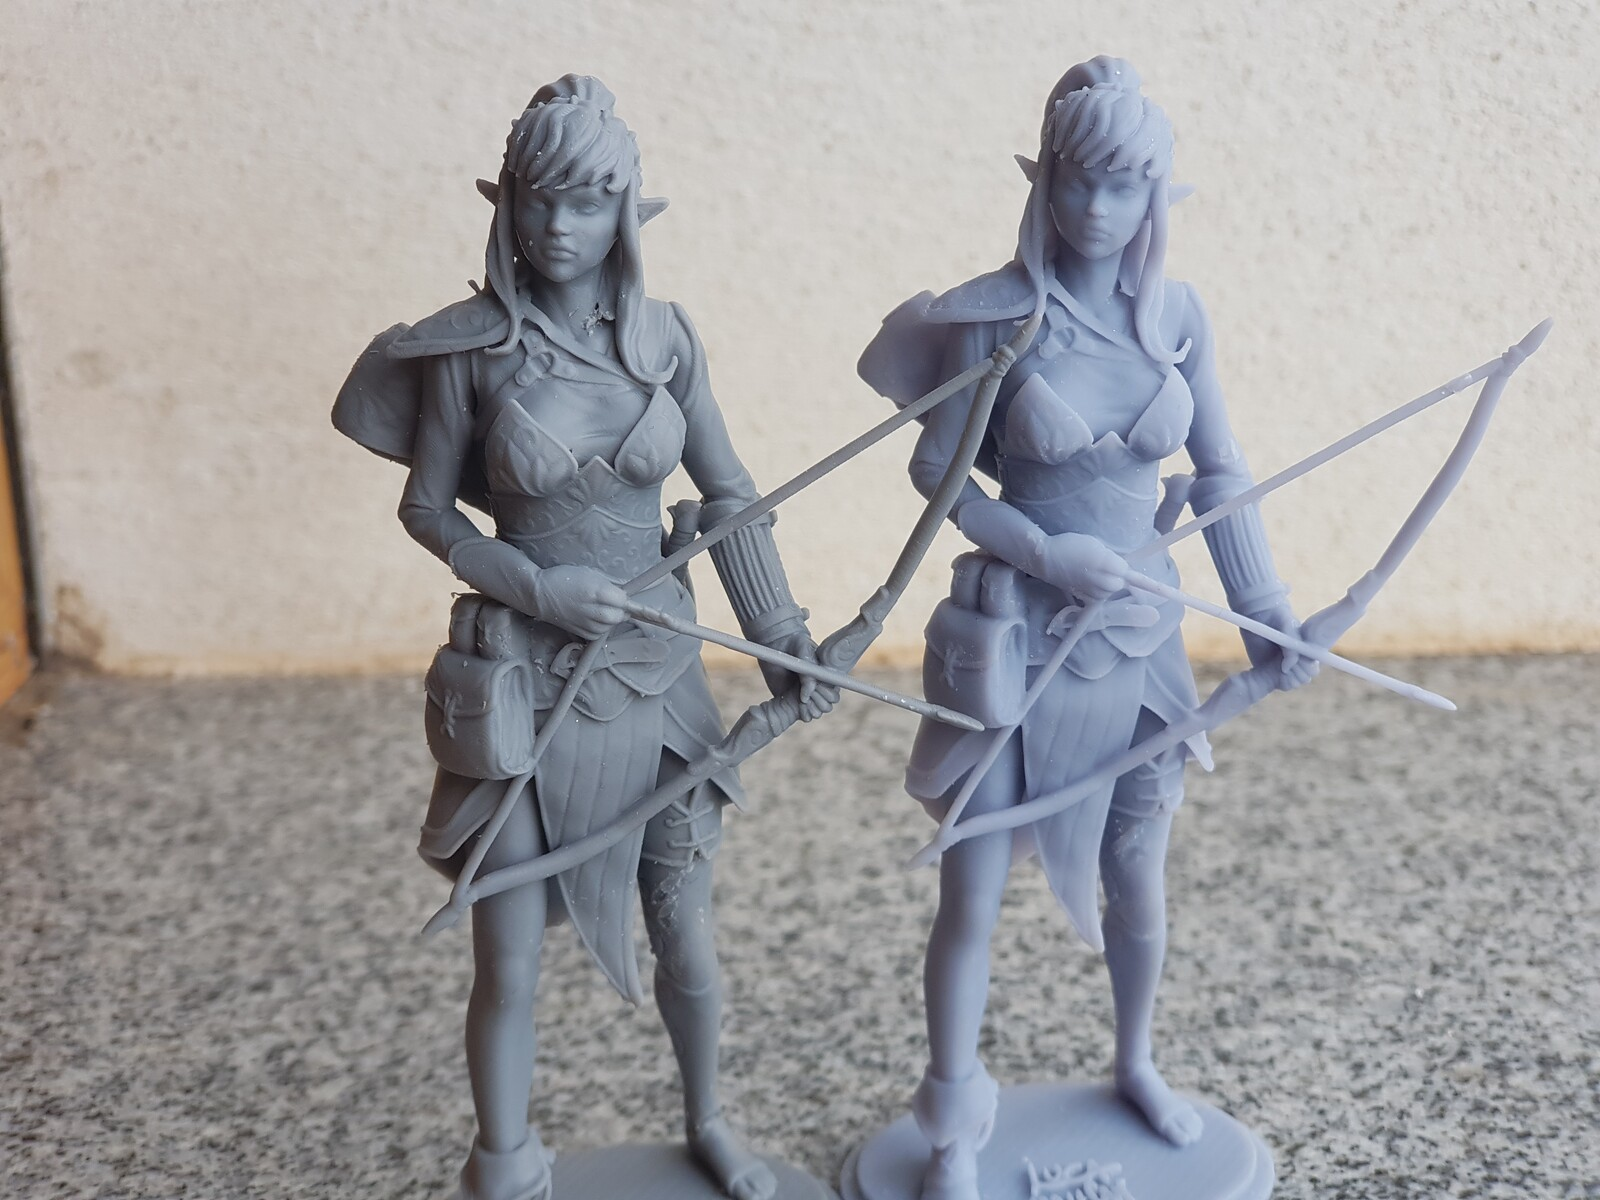 3D prints 90mm (Anycubic Photon with two different resins)